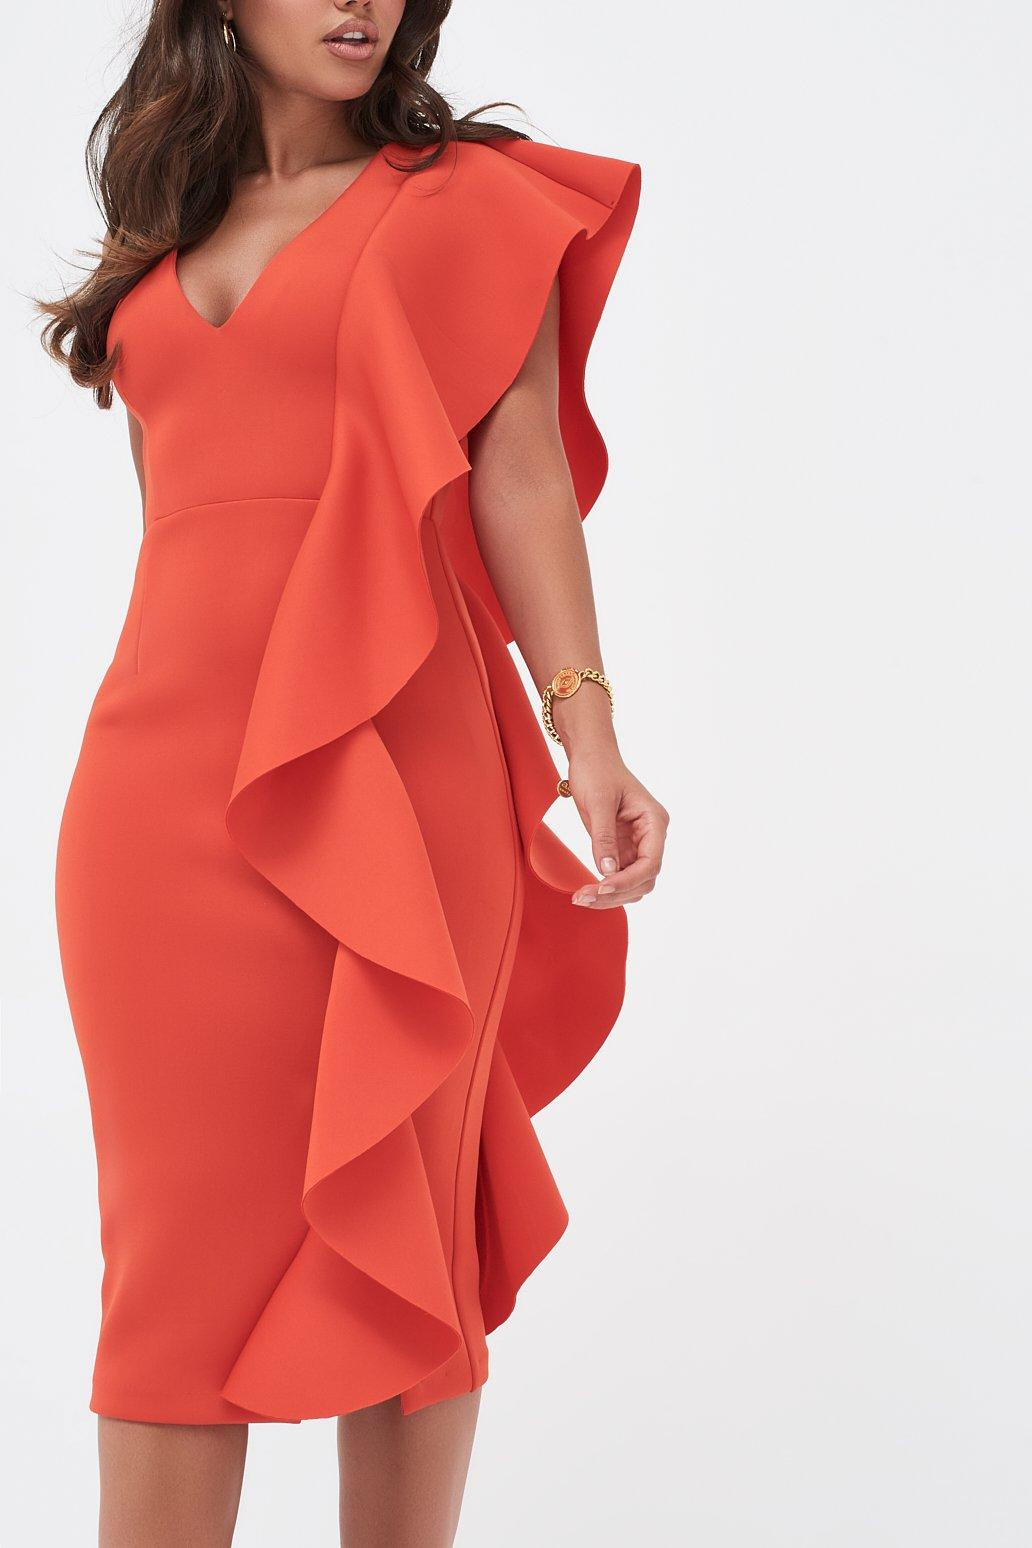 4b358fbe24b Lavish Alice - Scuba Frill V-neck Midi Dress In Scarlet Red - Lyst. View  fullscreen